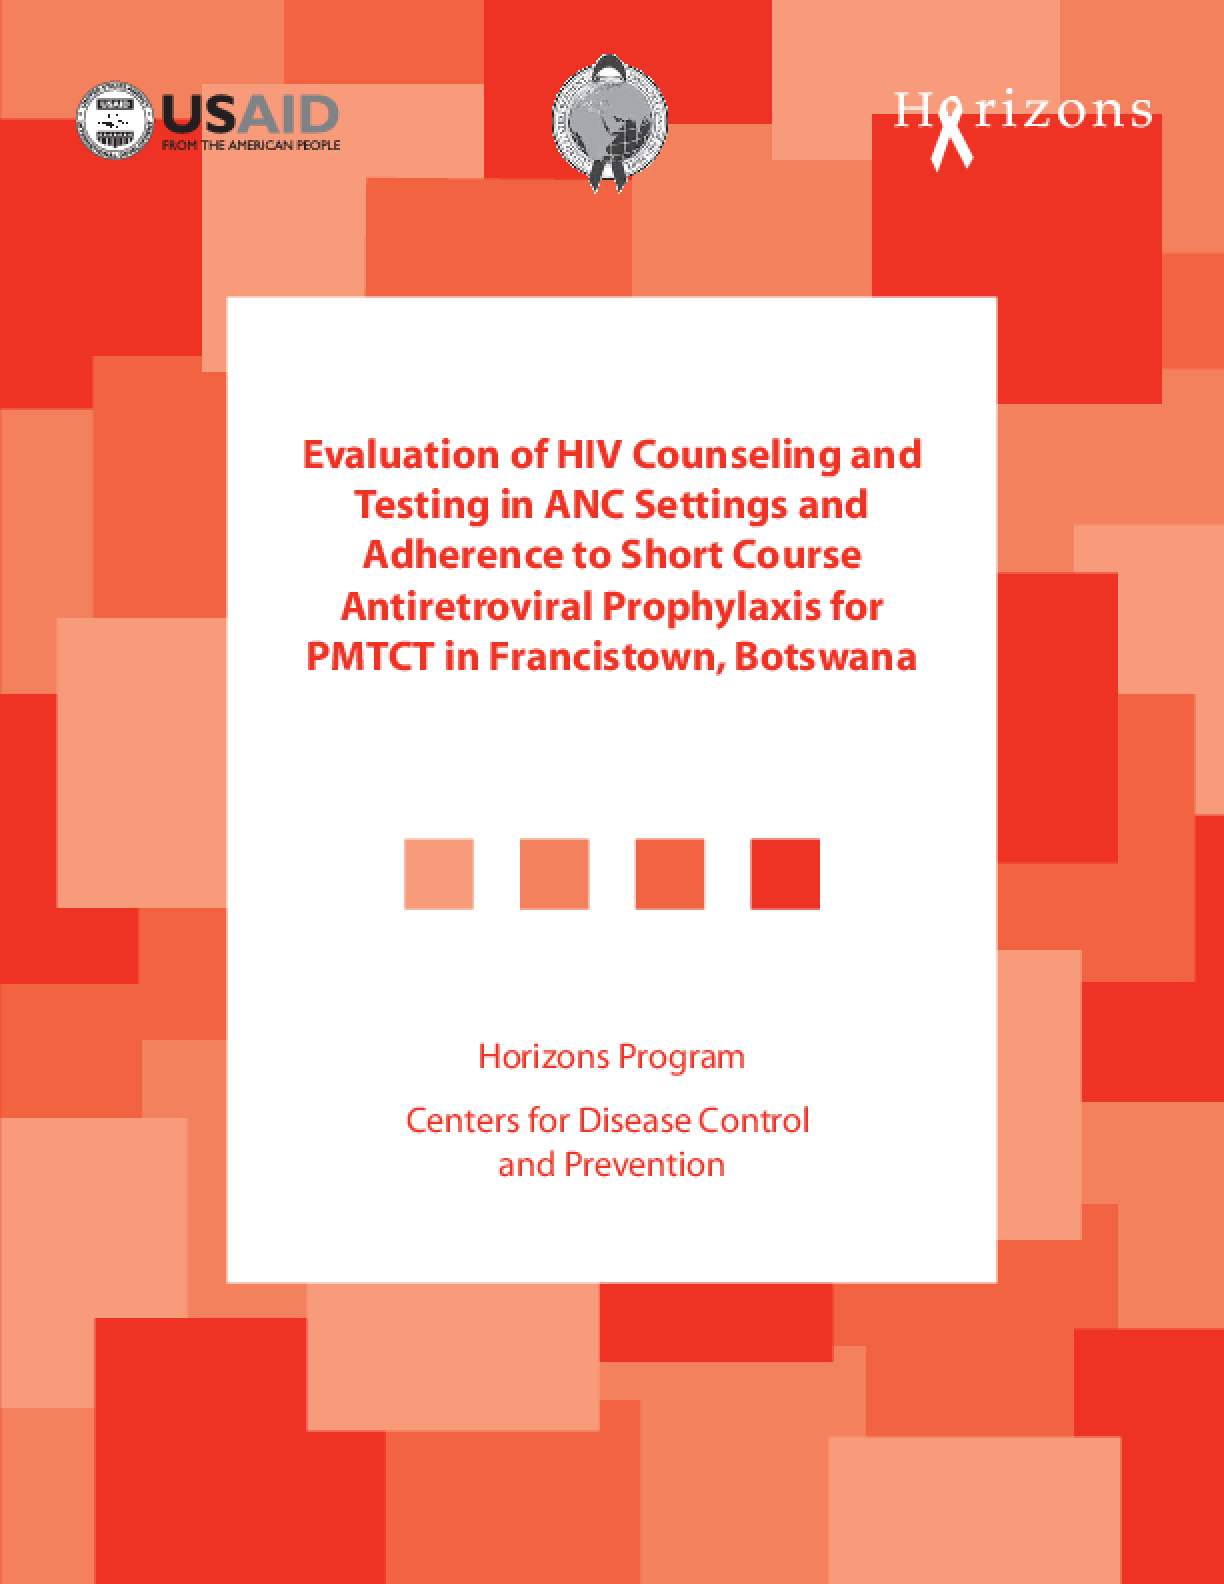 Evaluation of HIV counseling and testing in ANC settings and adherence to short course antiretroviral prophylaxis for PMTCT in Francistown, Botswana